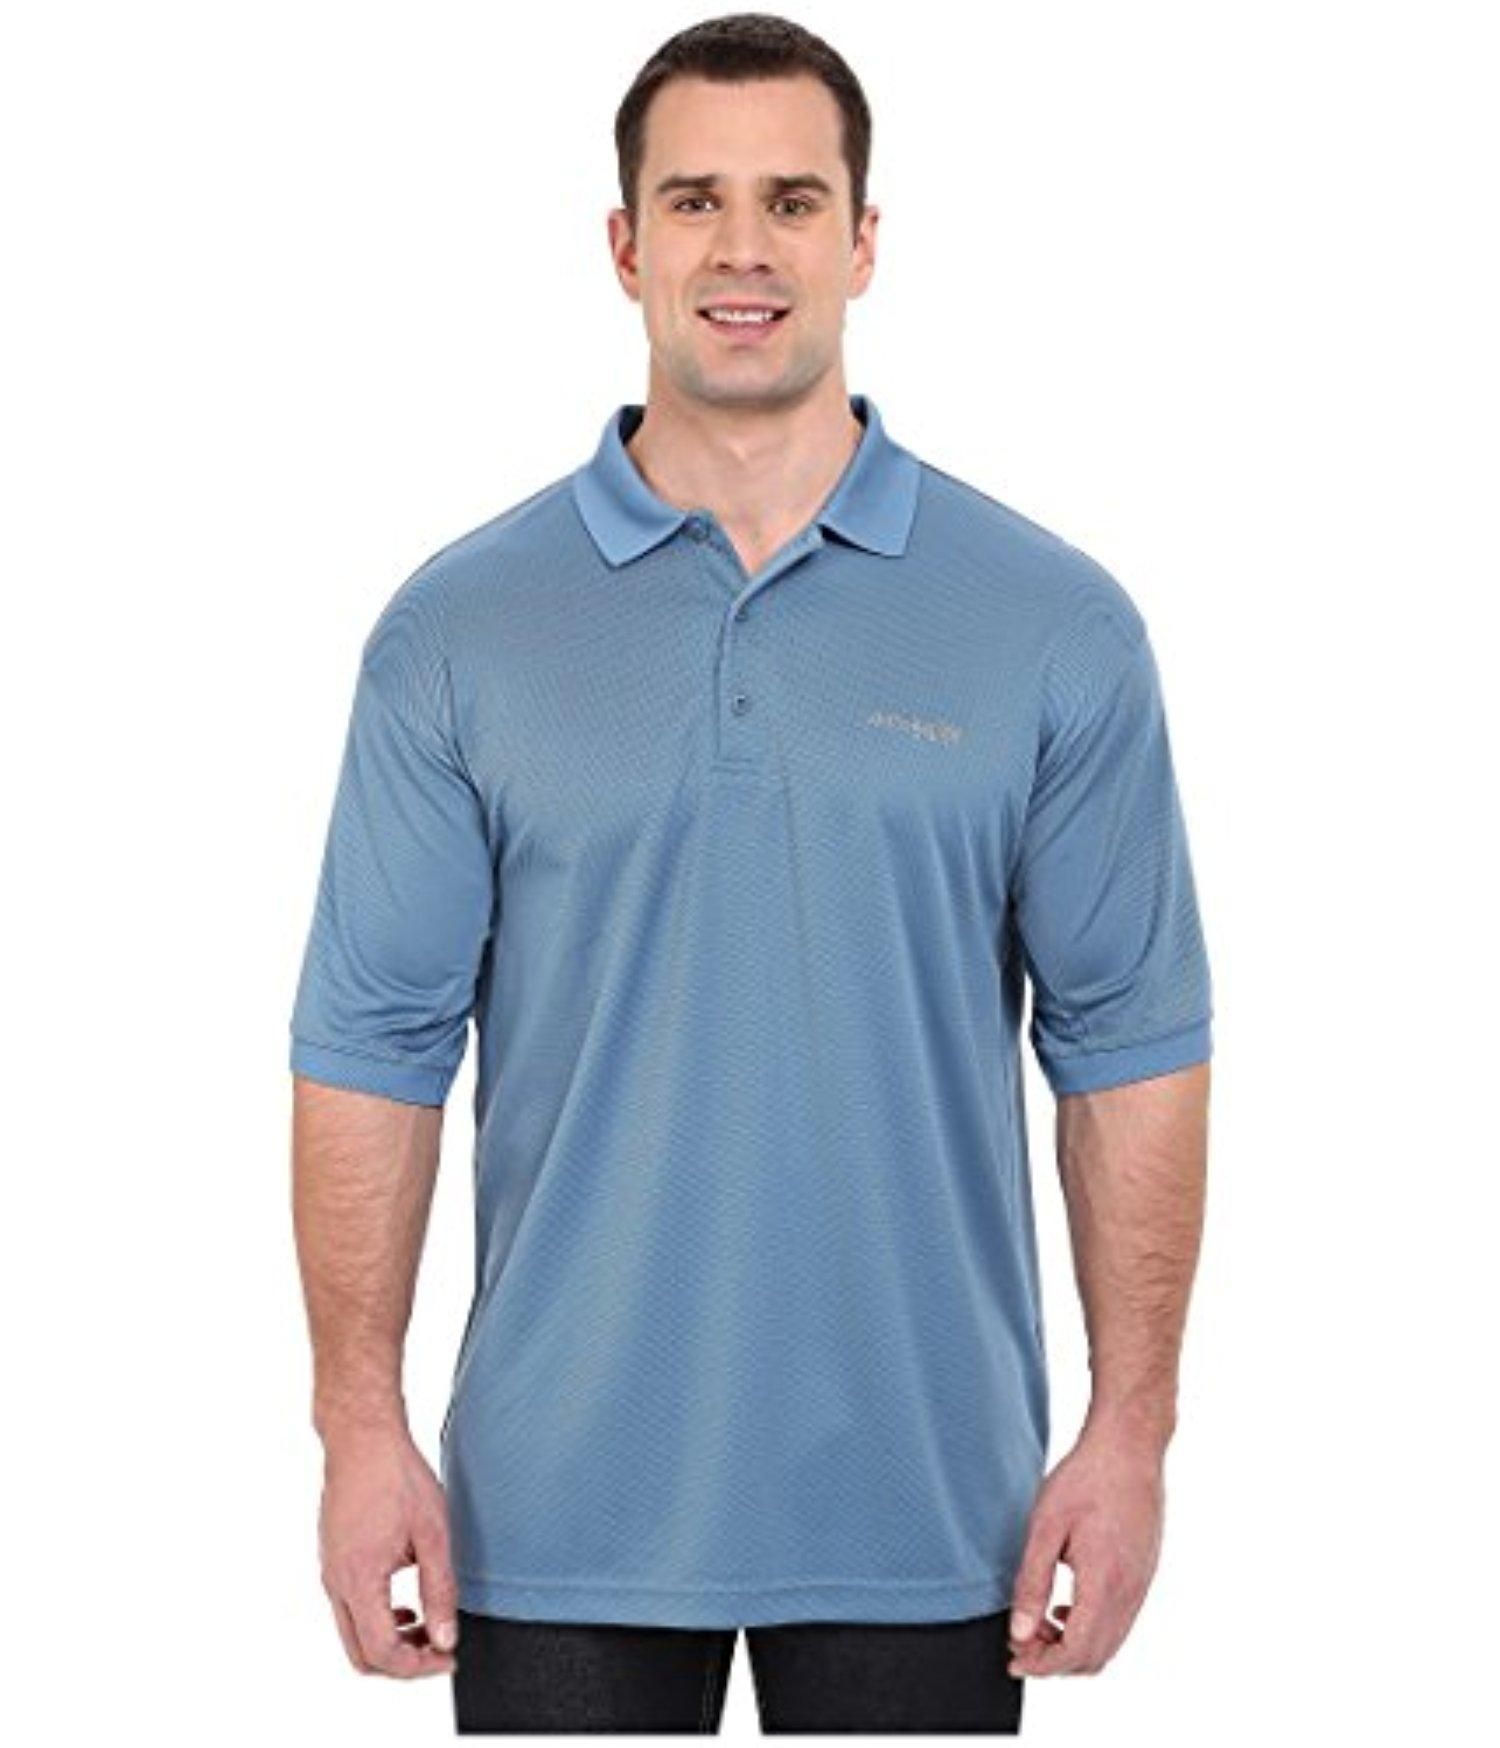 162a7316 Columbia Sportswear Men's Perfect Cast Polo Shirt (Big), Steel, 2X -  Brought to you by Avarsha.com